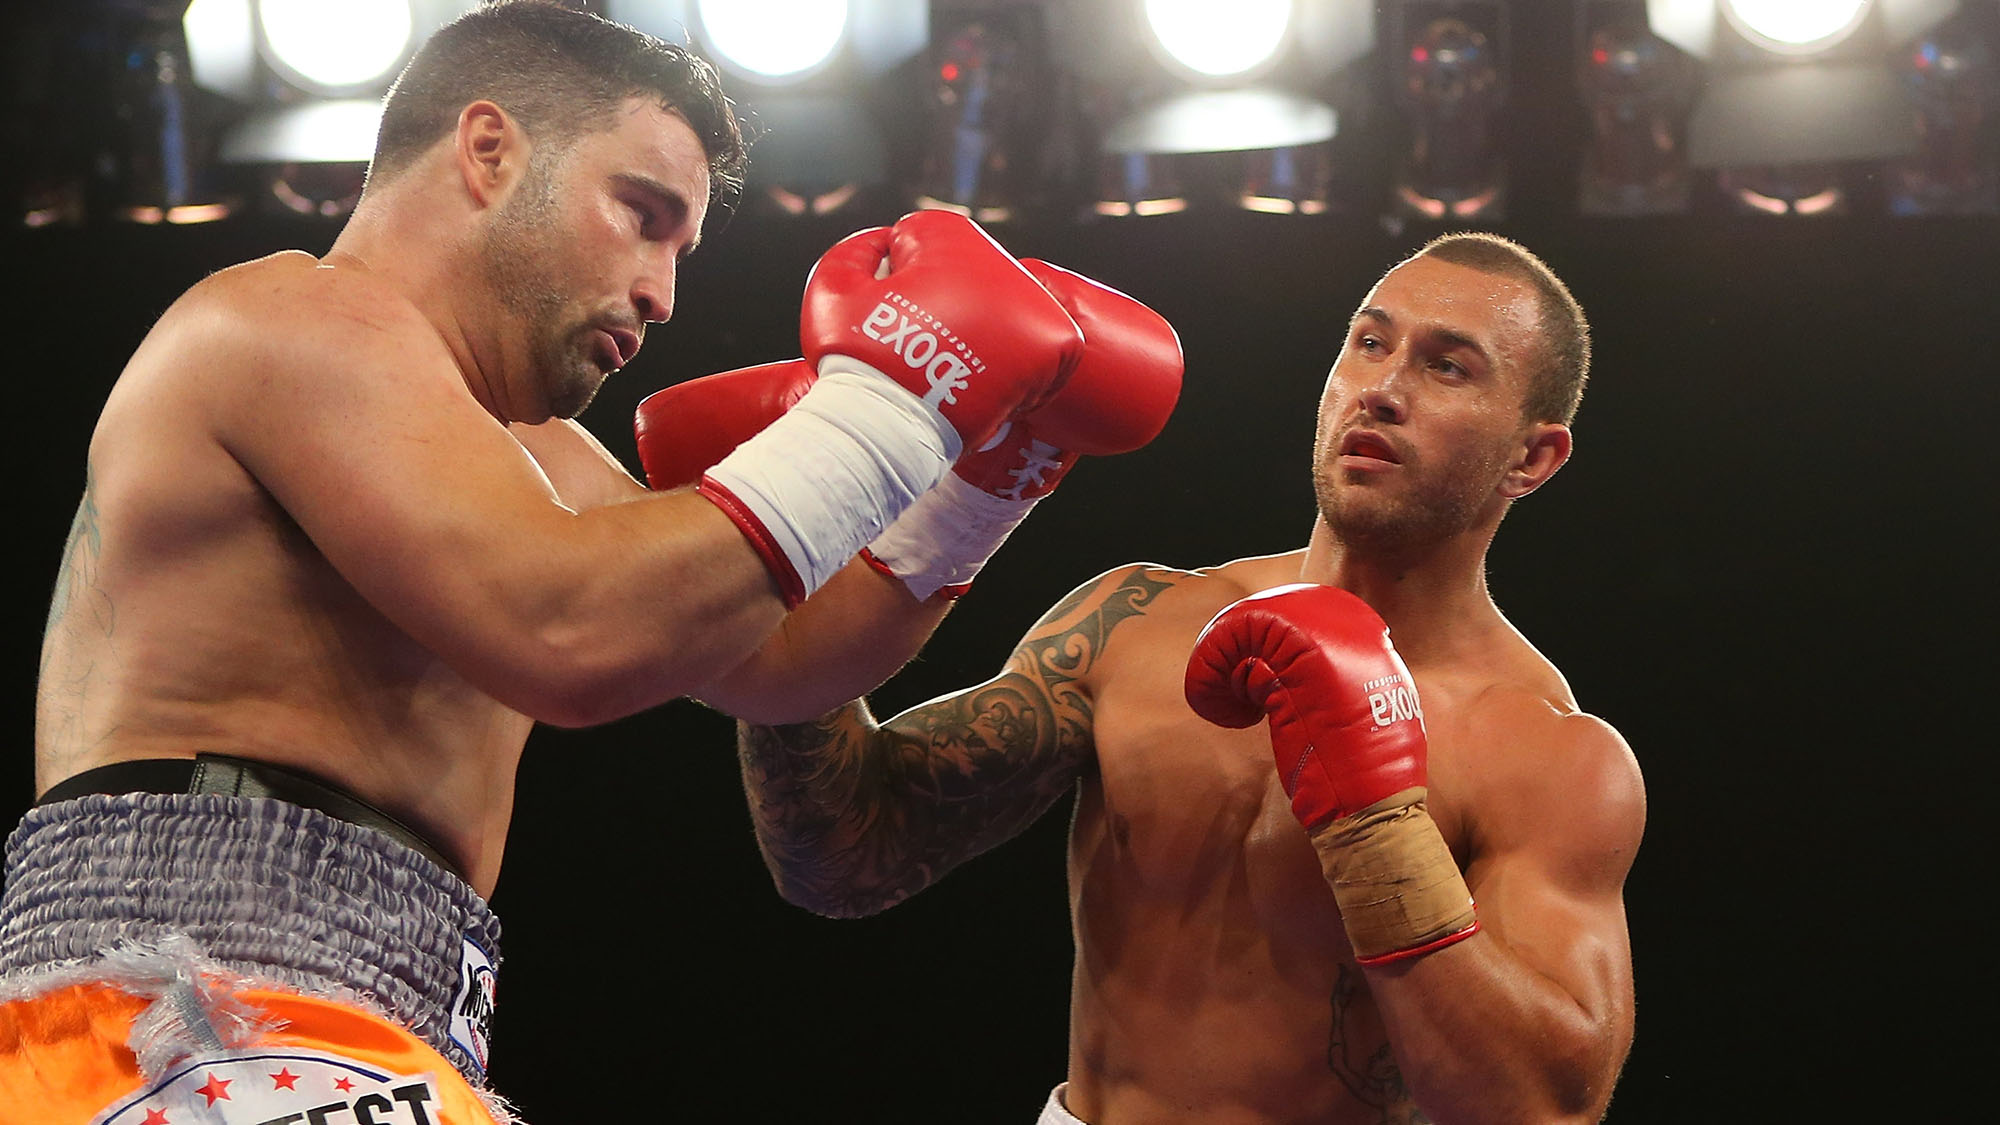 Quade Cooper to fight on Mundine-Green II undercard ...